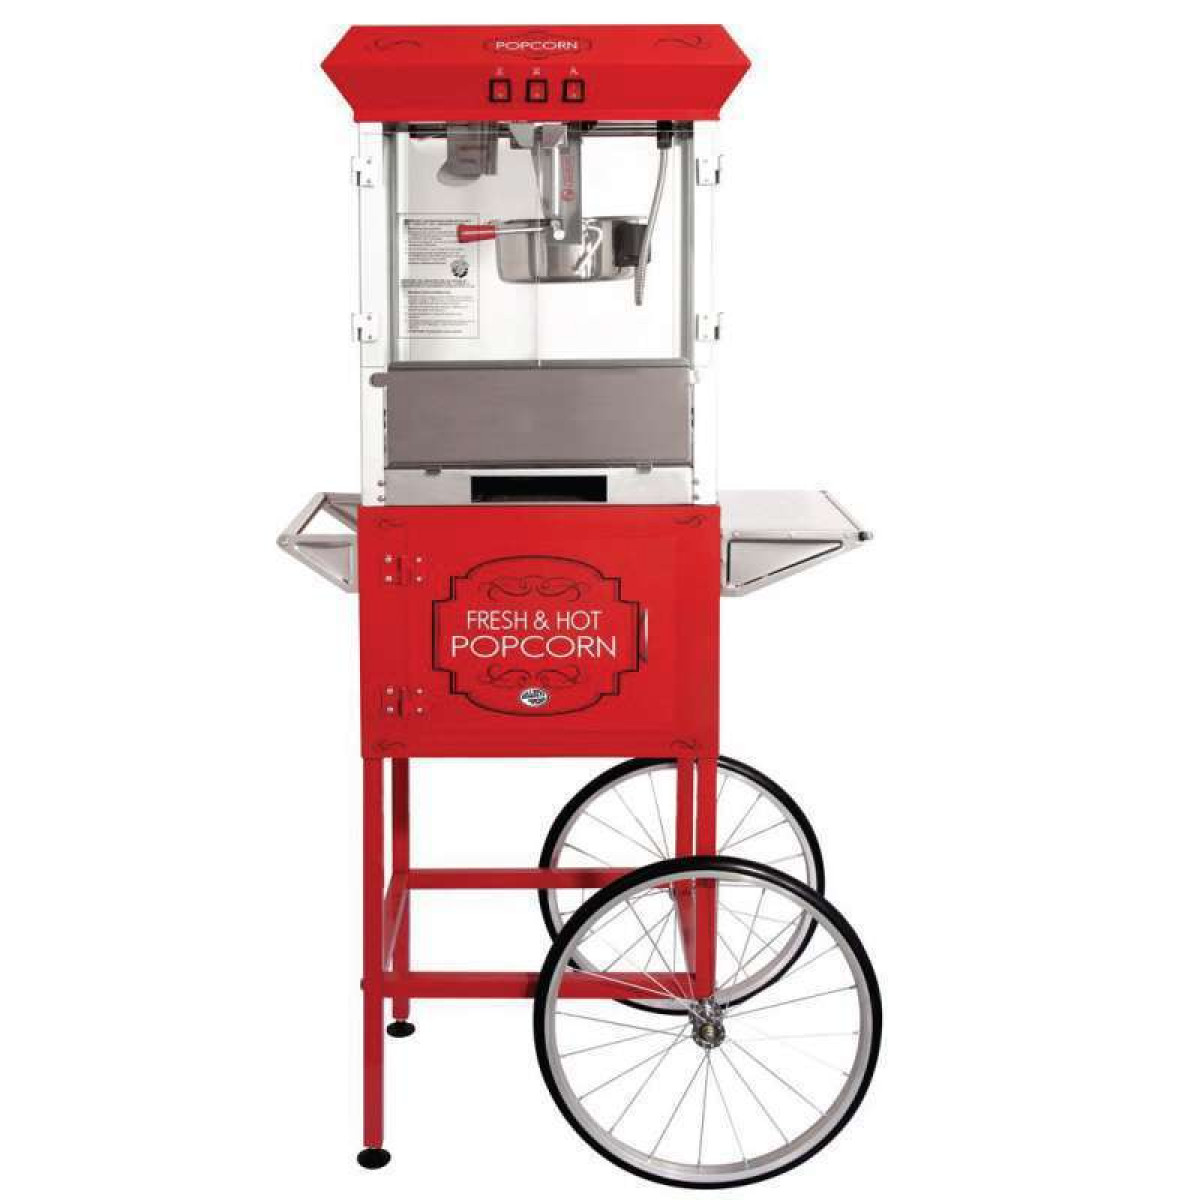 Prize Wheels Raffle Drums Popcorn Machines Plinko